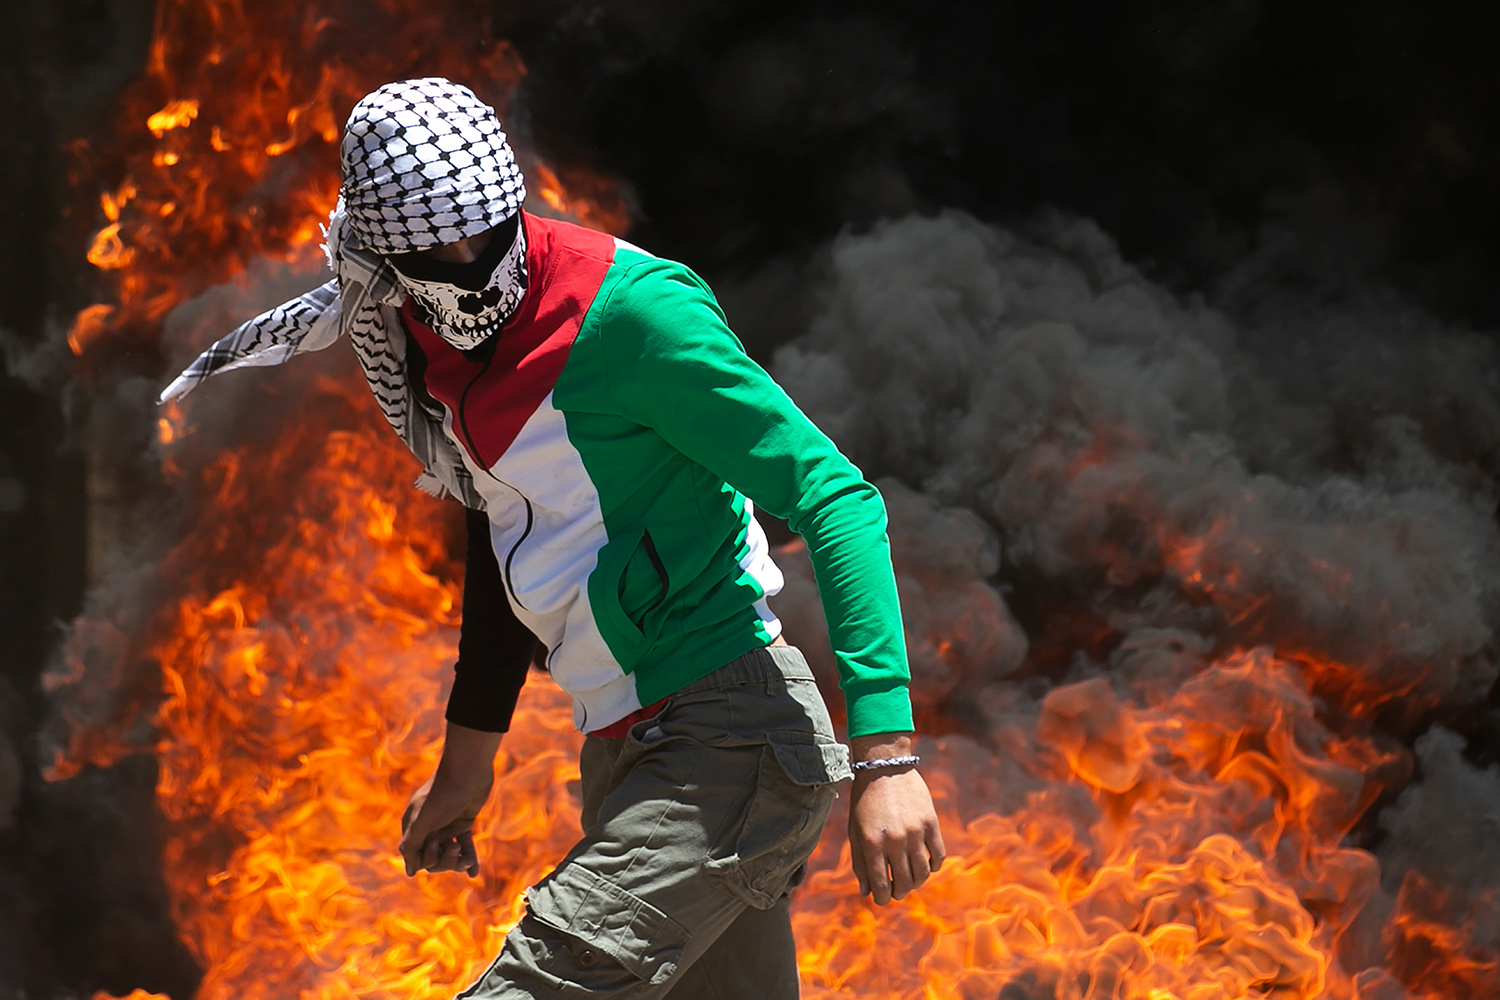 A Palestinian protester walks near burning tires during clashes with Israeli forces in the village of Kafr Qaddum, in the Israeli-occupied West Bank, on June 12. Protests were sparked by the Jewish state's plans to annex part of the territory. JAAFAR ASHTIYEH/AFP via Getty Images